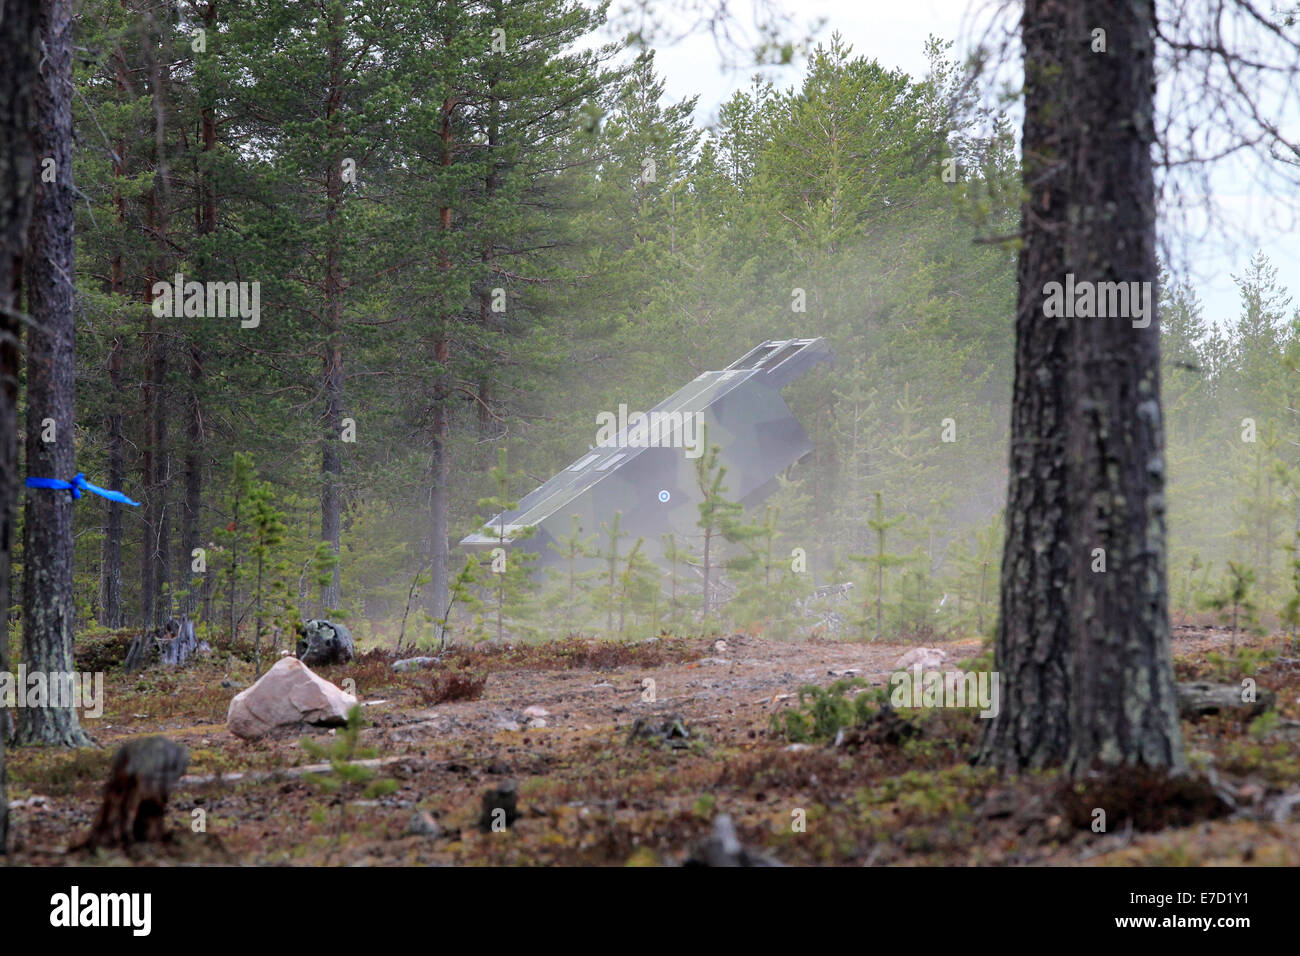 Finnish Defence Forces Heavy Rocket Launcher M270 MLRS (298 RSRAKH 06) before shooting - Stock Image